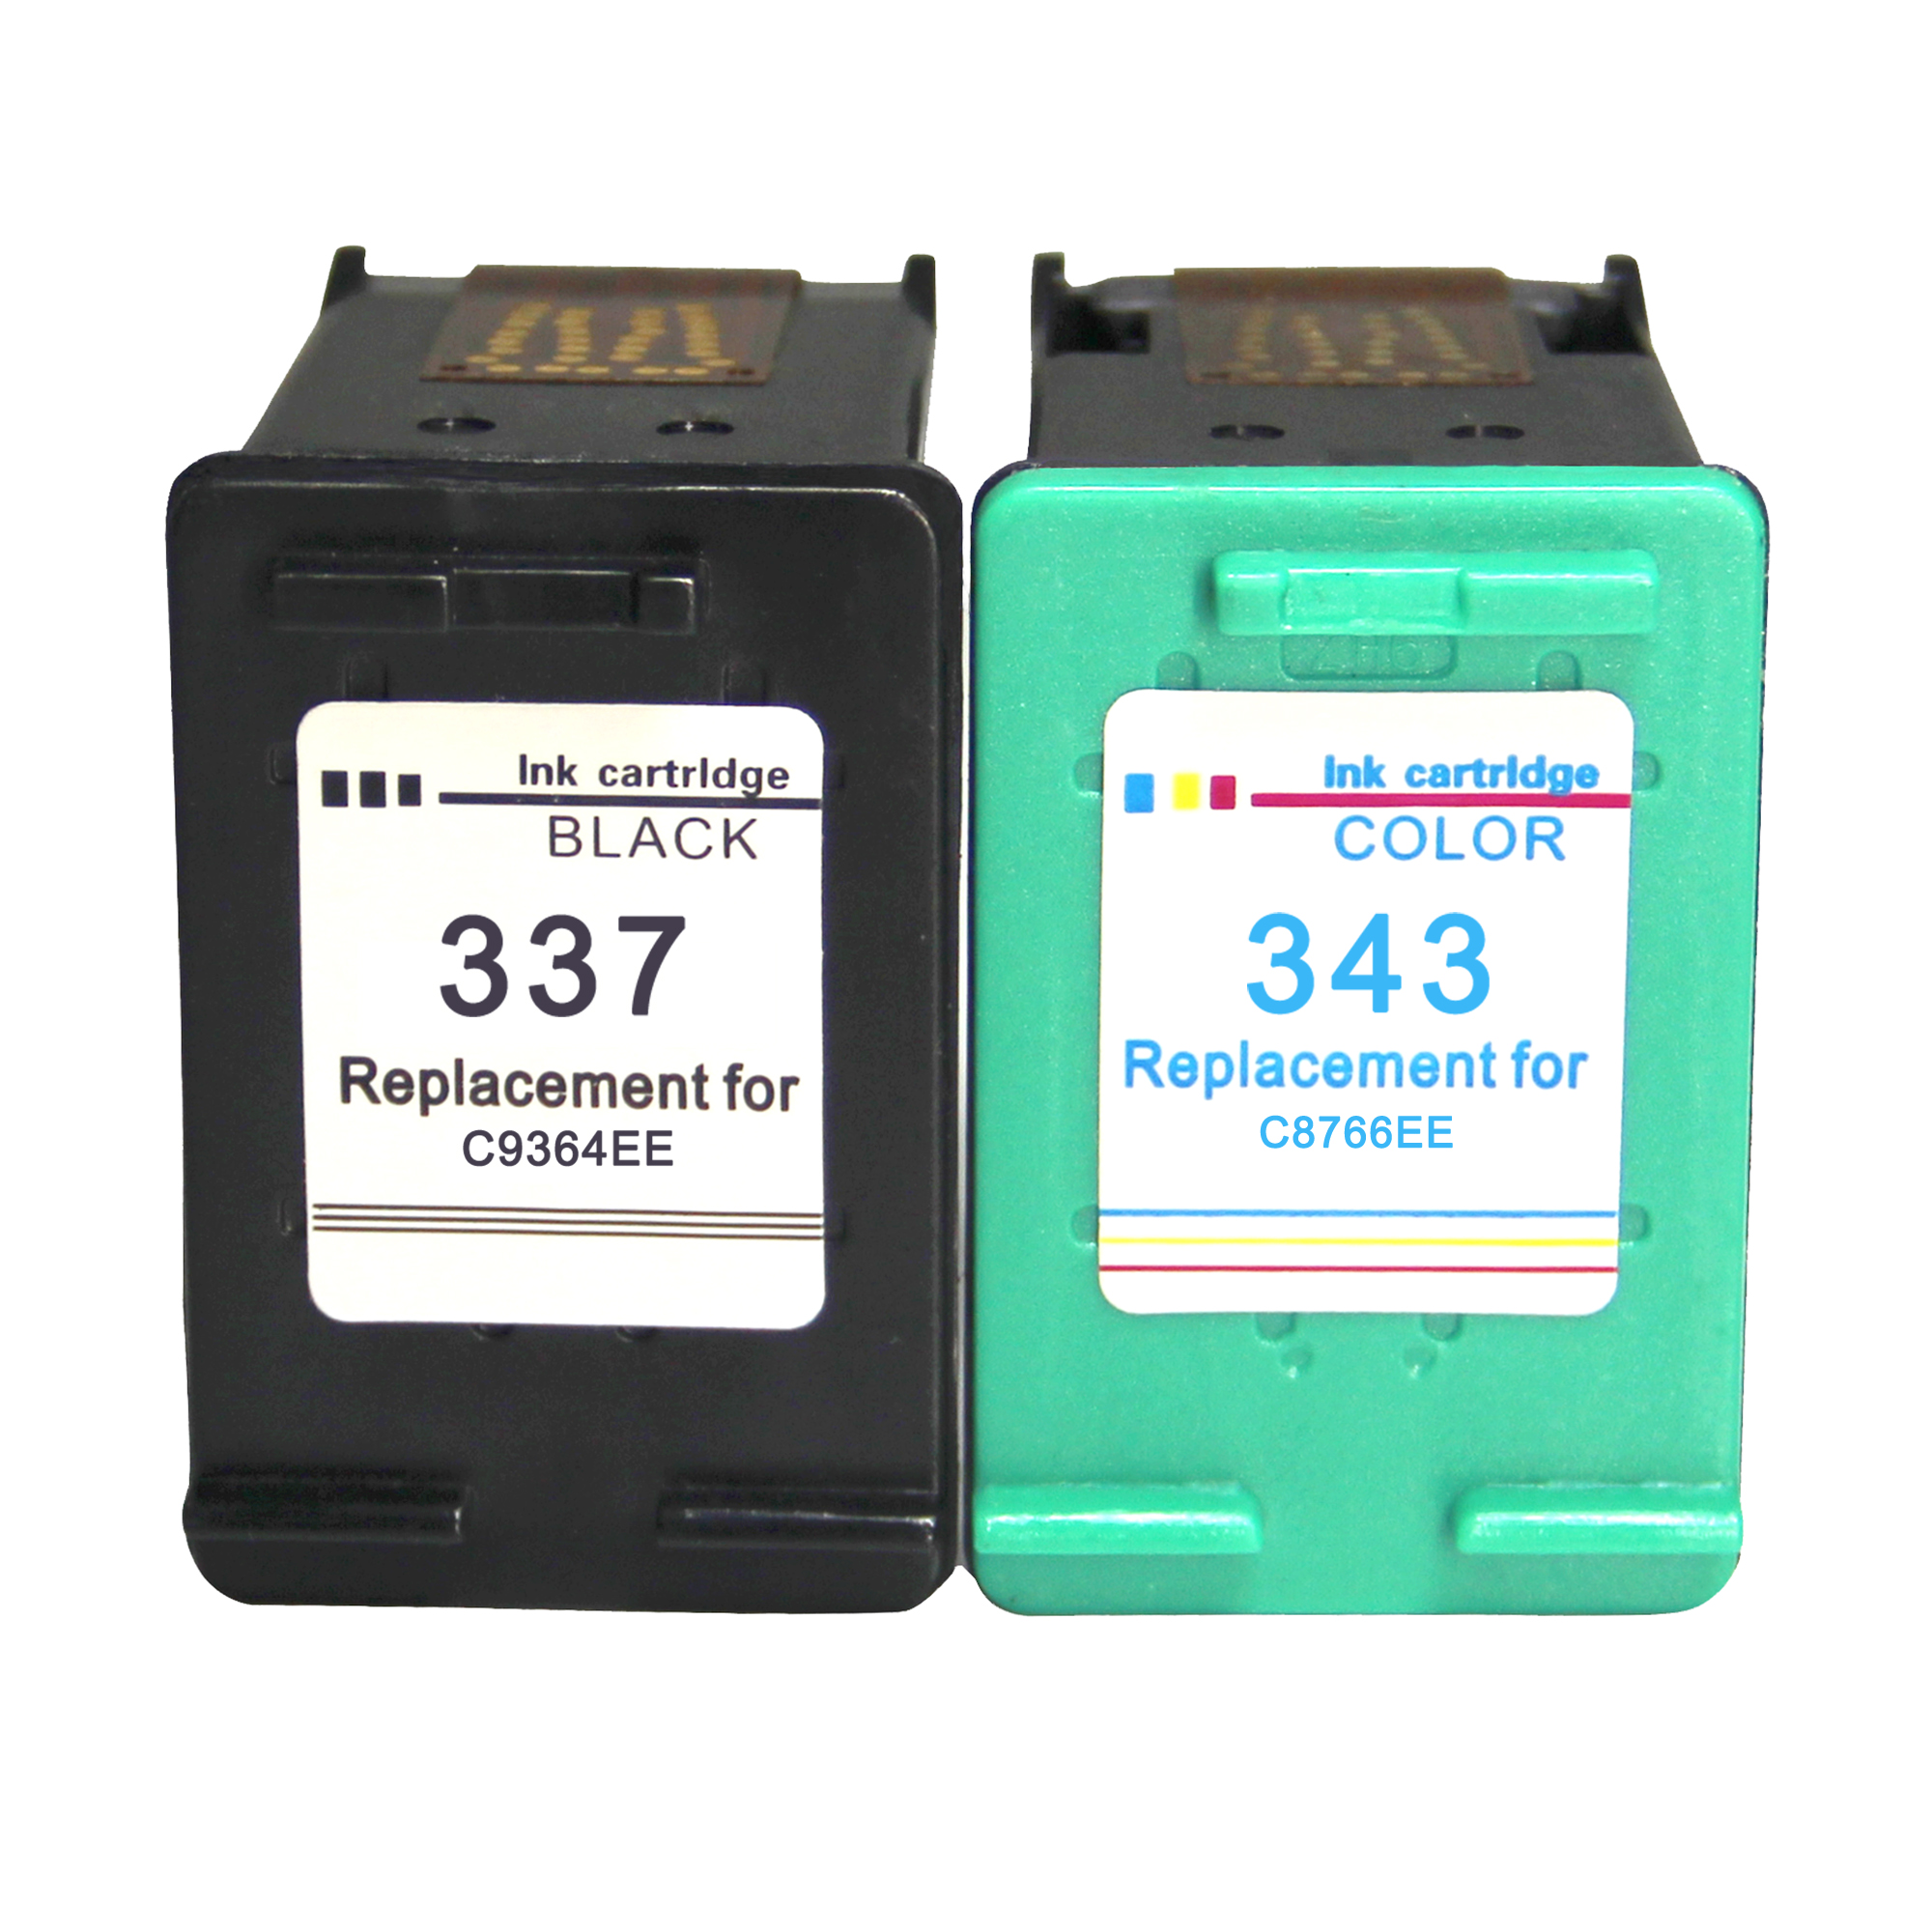 Compatible for HP 343 337 Ink Cartridge for HP337 hp343 for HP Photosmart 2575 8050 C4180 D5160 Deskjet 6940 D4160 hp PSC 1500 einkshop compatible ink cartridge for hp 337 343 for hp photosmart c4180 2575 8050 d5160 c4190 deskjet 6940 d4160 printer